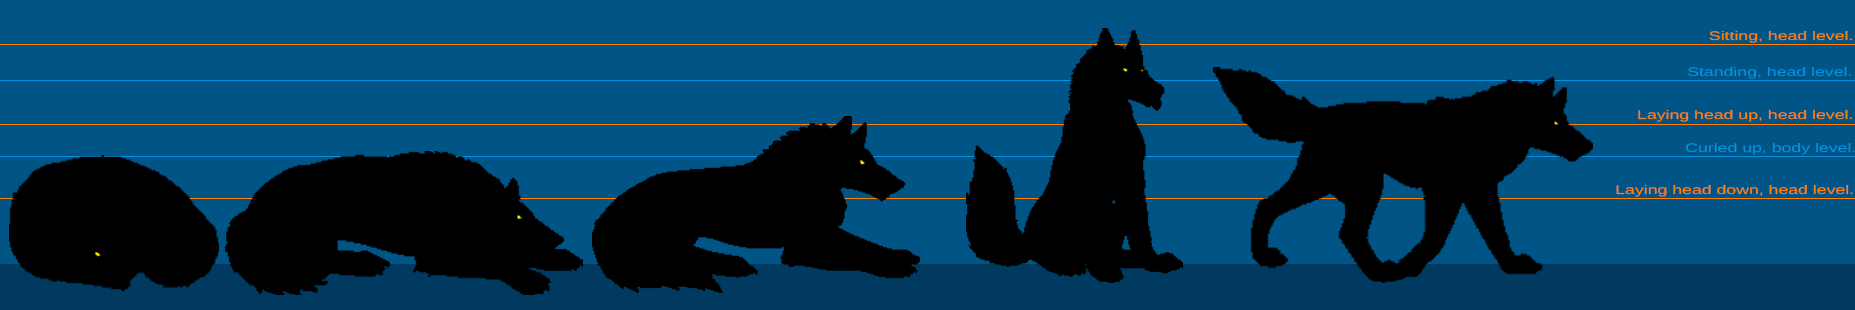 Pose sizing chart. Size_chart_dire_or_larger_canines_by_fezsinner-dbts28o